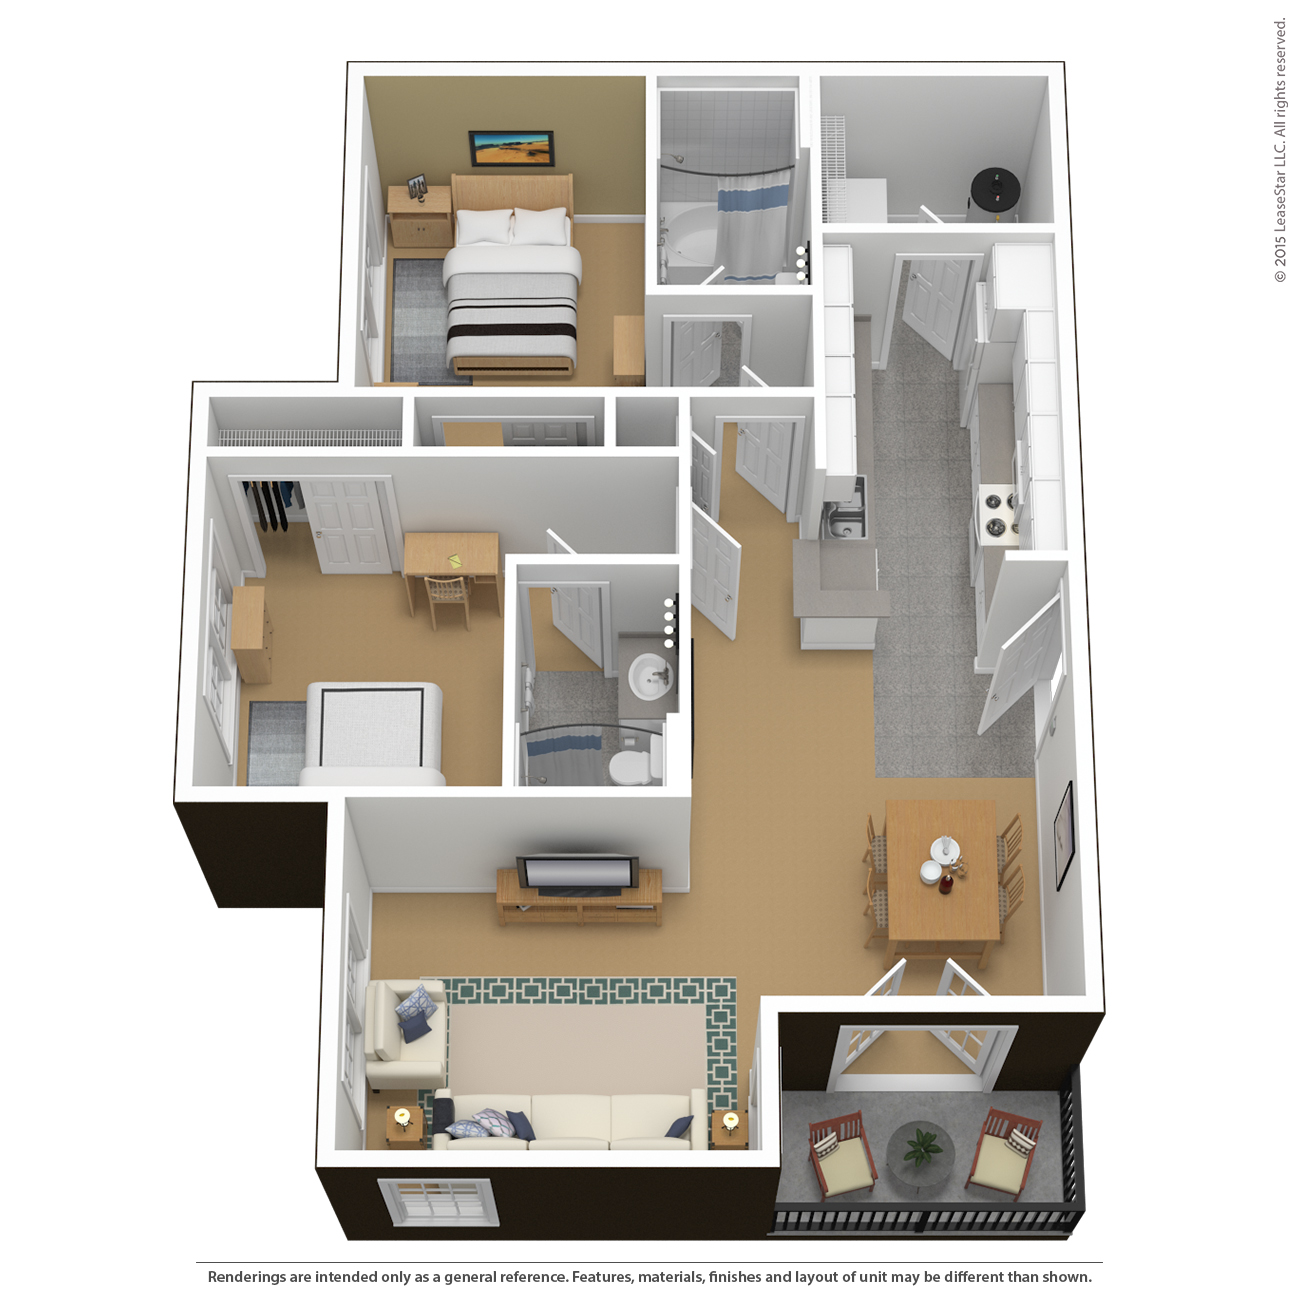 floor plans virtual tours the courtyards. Black Bedroom Furniture Sets. Home Design Ideas